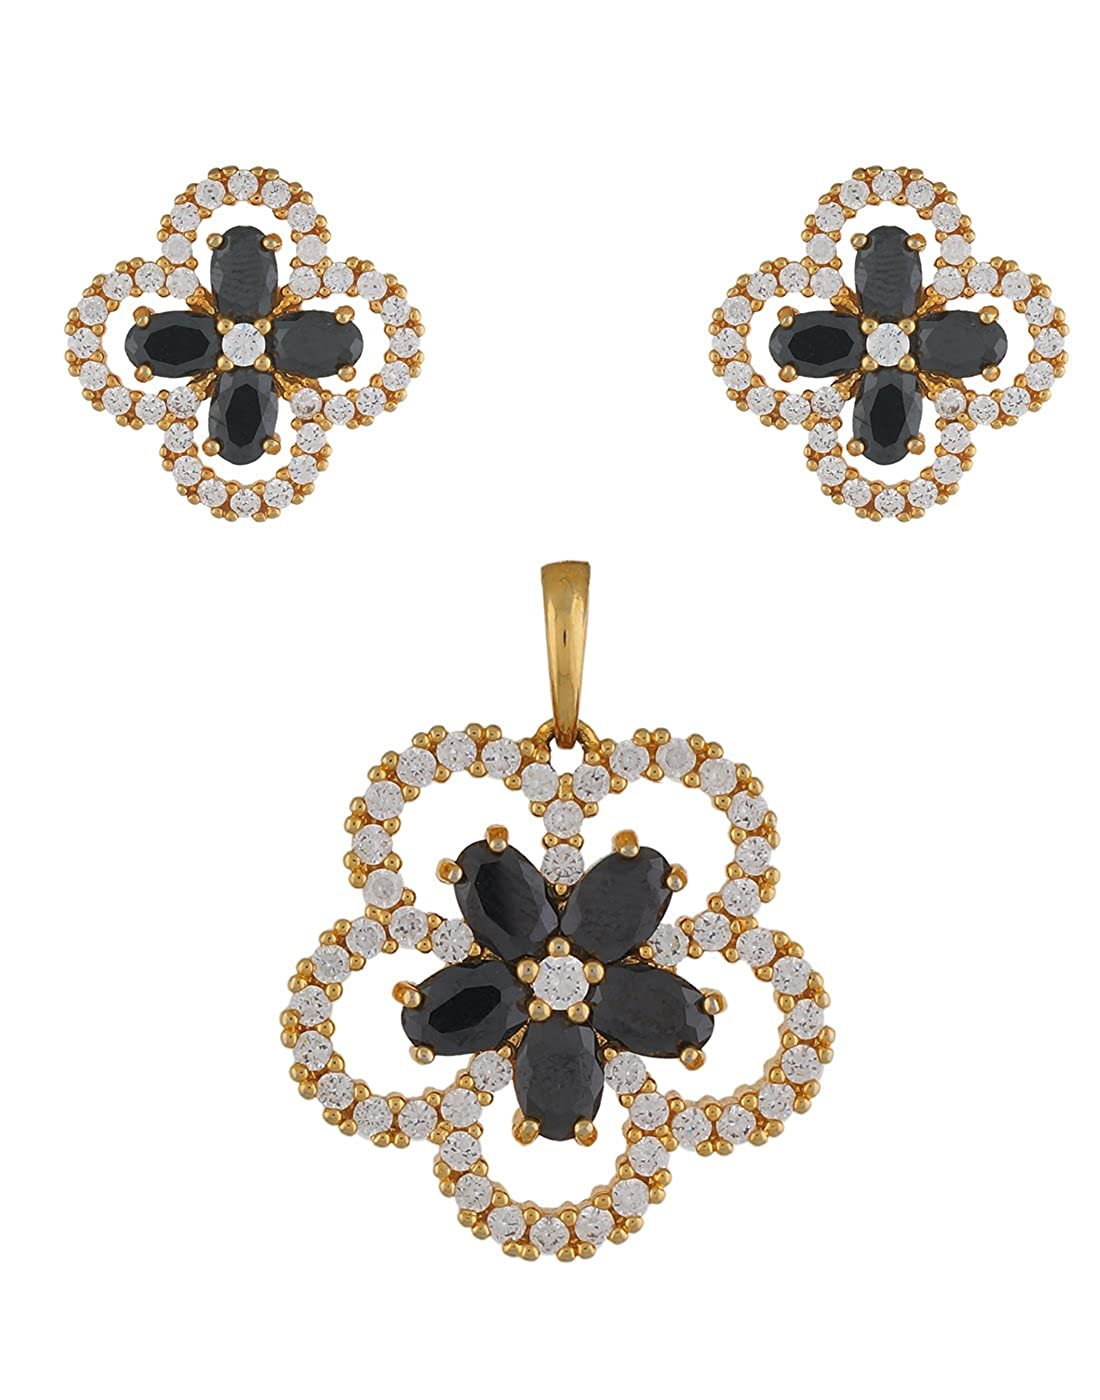 954eb8bf3 Buy VAMA FASHIONS Black Colour Gold Plated Cubic Zirconia (CZ) Pendent  Earring Jewellery Set + Free Chain - online shopping for Jewellery Online at  Low ...